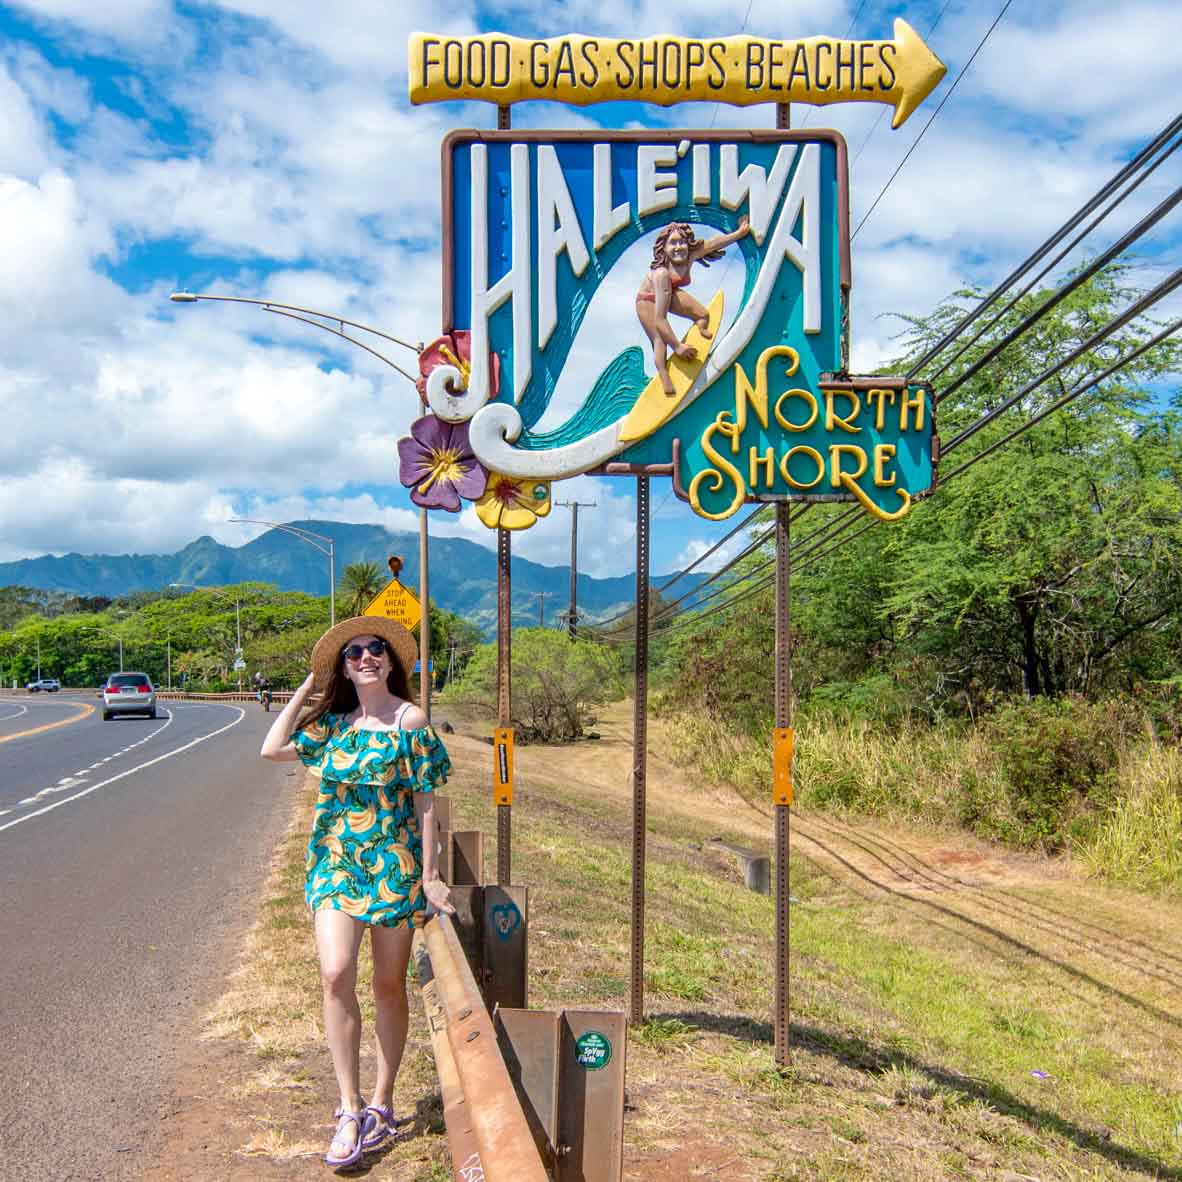 Woman standing next to Haleiwa surfer sign in Haleiwa Town on the North Shore of Oahu